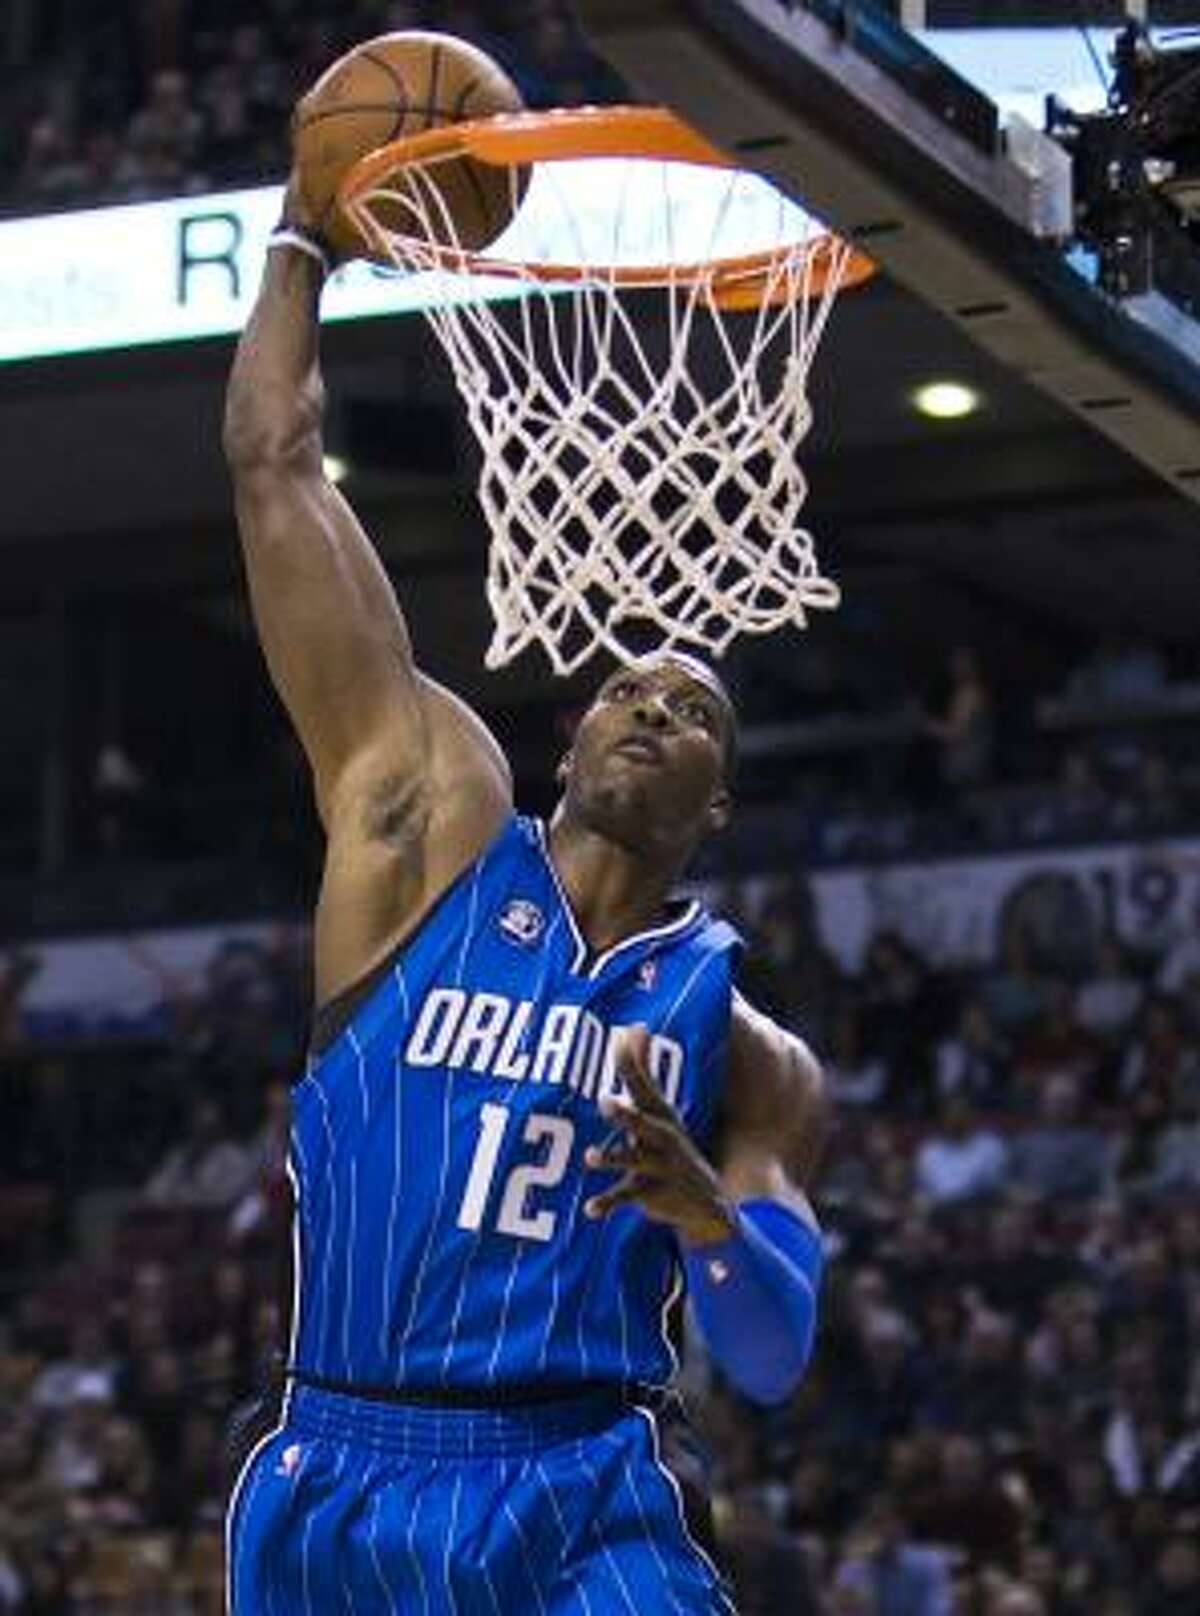 3 - ORLANDO MAGIC - (Last wk: 4) - 37-12 - The Magic served notice that they are not just a trendy darkhorse pick with a whipping of the Cavaliers last week. They even managed to wind up with more All-Stars - Dwight Howard (pictured), Rashard Lewis and Jameer Nelson - than anybody else in the league.